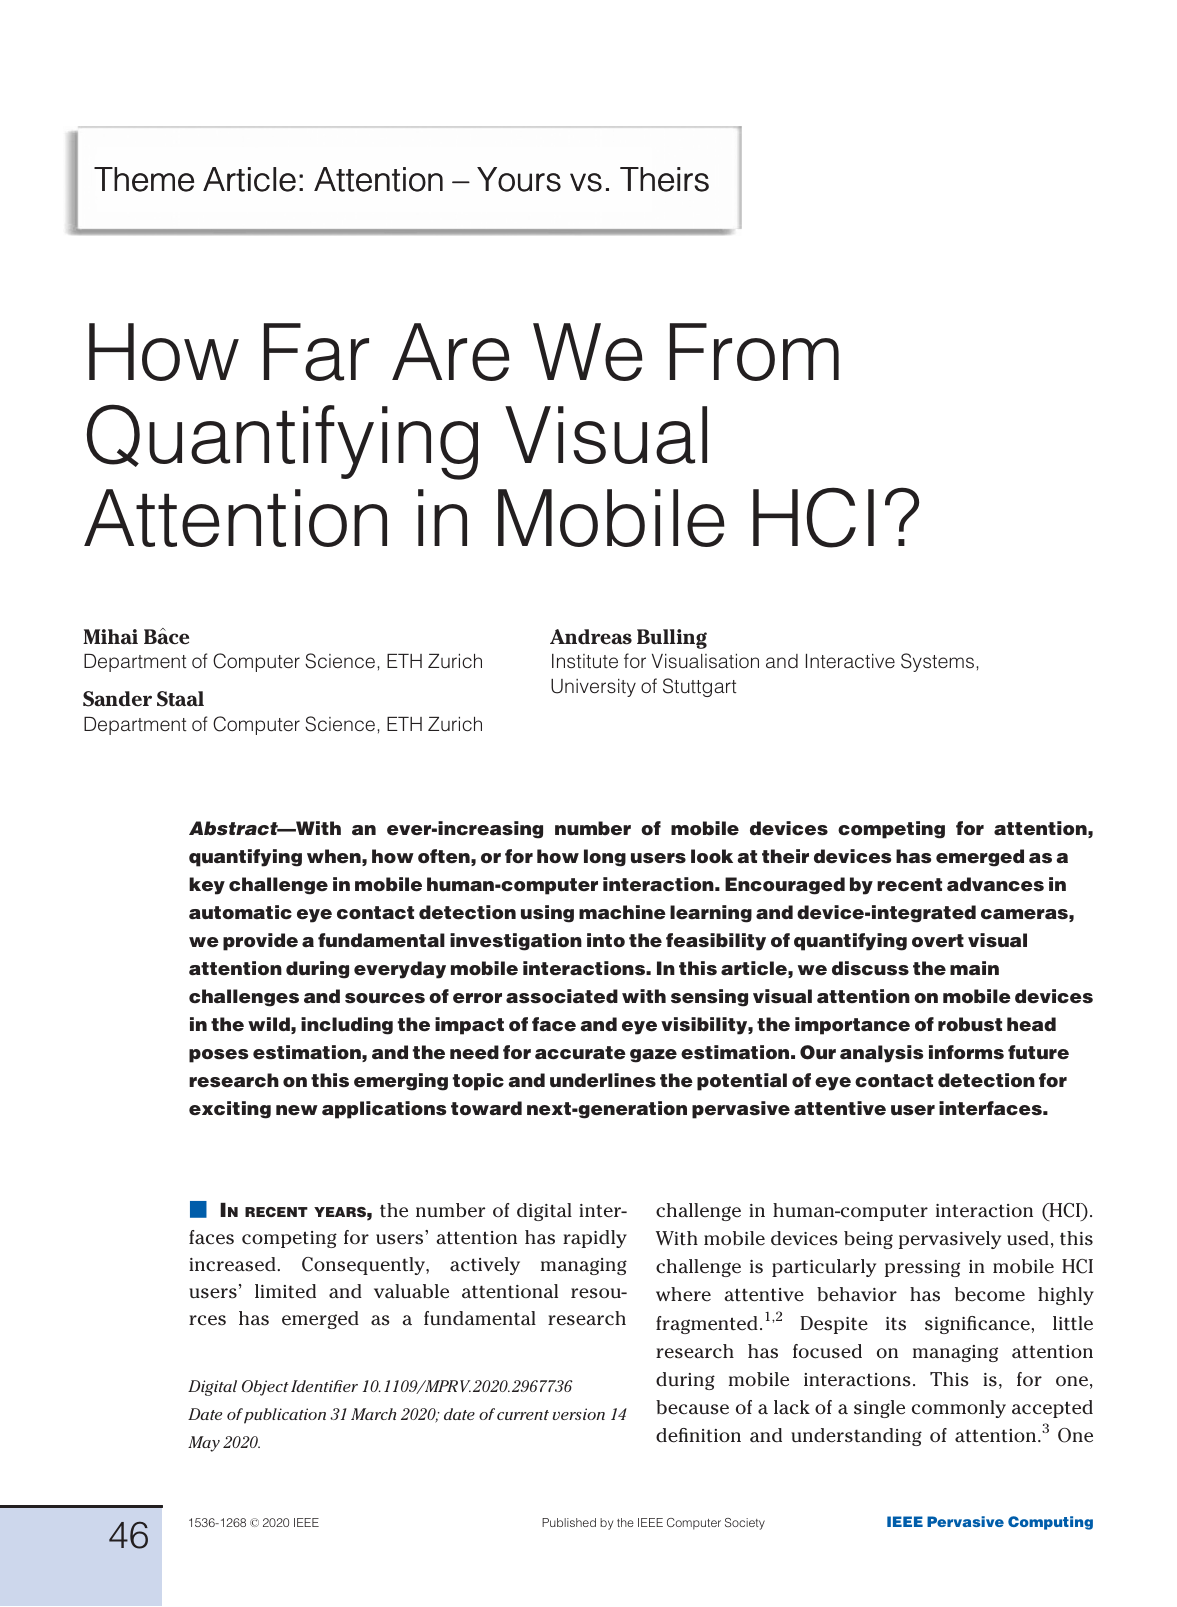 How far are we from quantifying visual attention in mobile HCI?